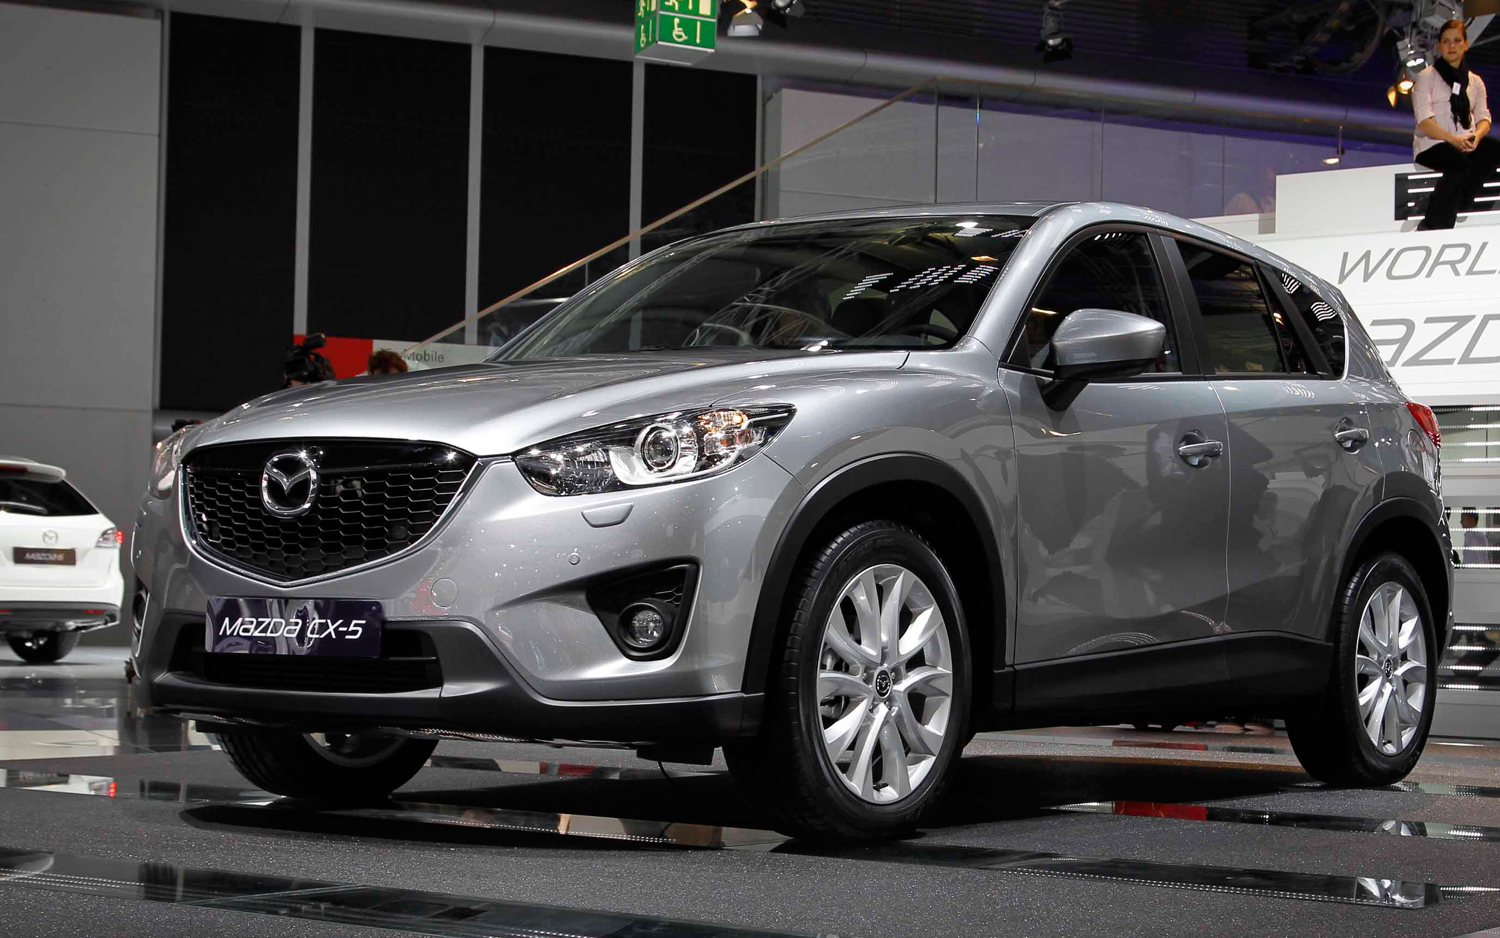 https://enthusiastnetwork.s3.amazonaws.com/uploads/sites/5/2011/08/2013-Mazda-CX-5-Prototype-front-three-quarters.jpg?impolicy=entryimage